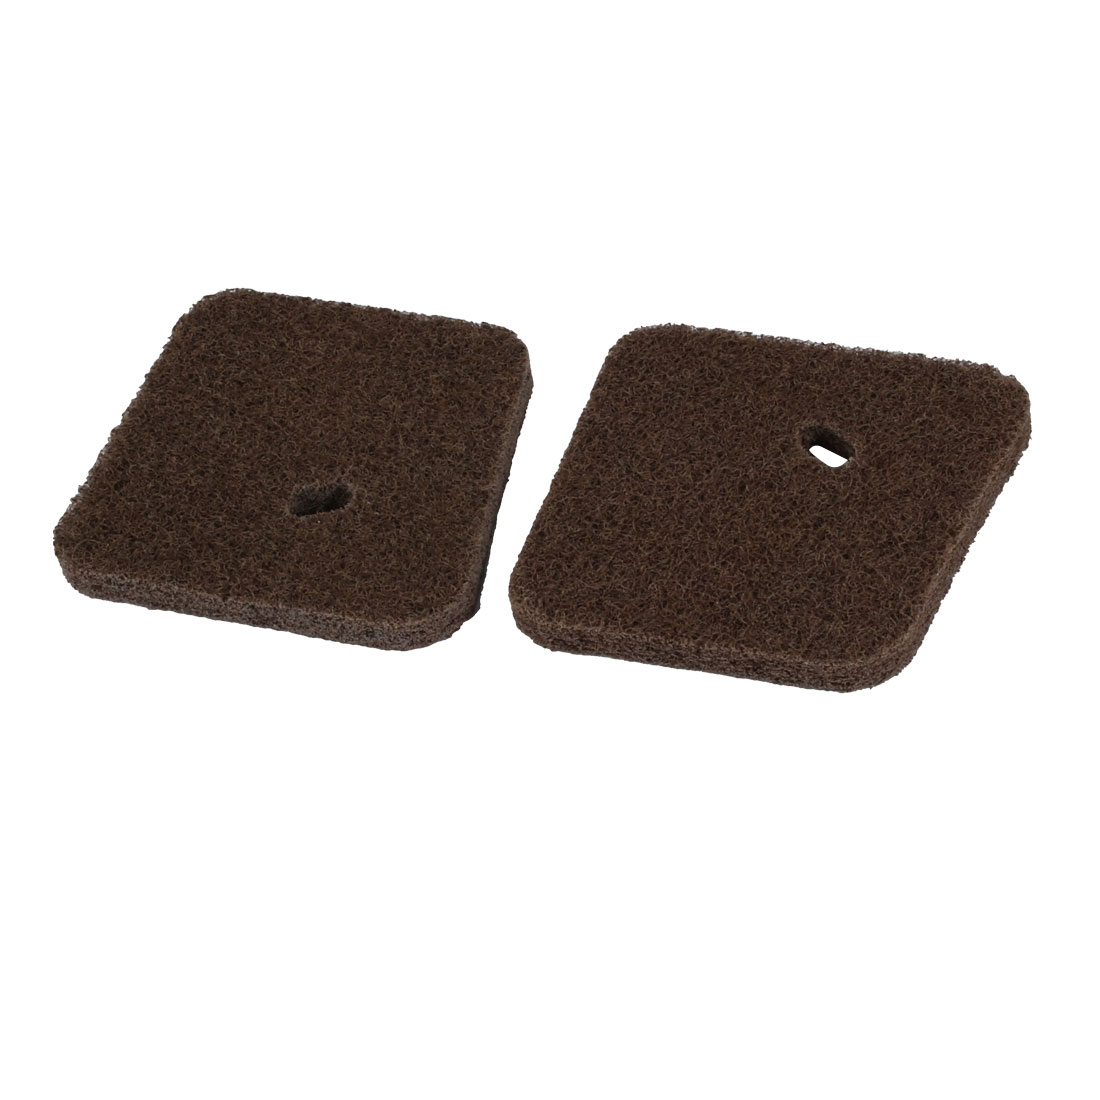 2pcs Replacement Parts Cotton Air Filter Cleaner for FS55 String Trimmer